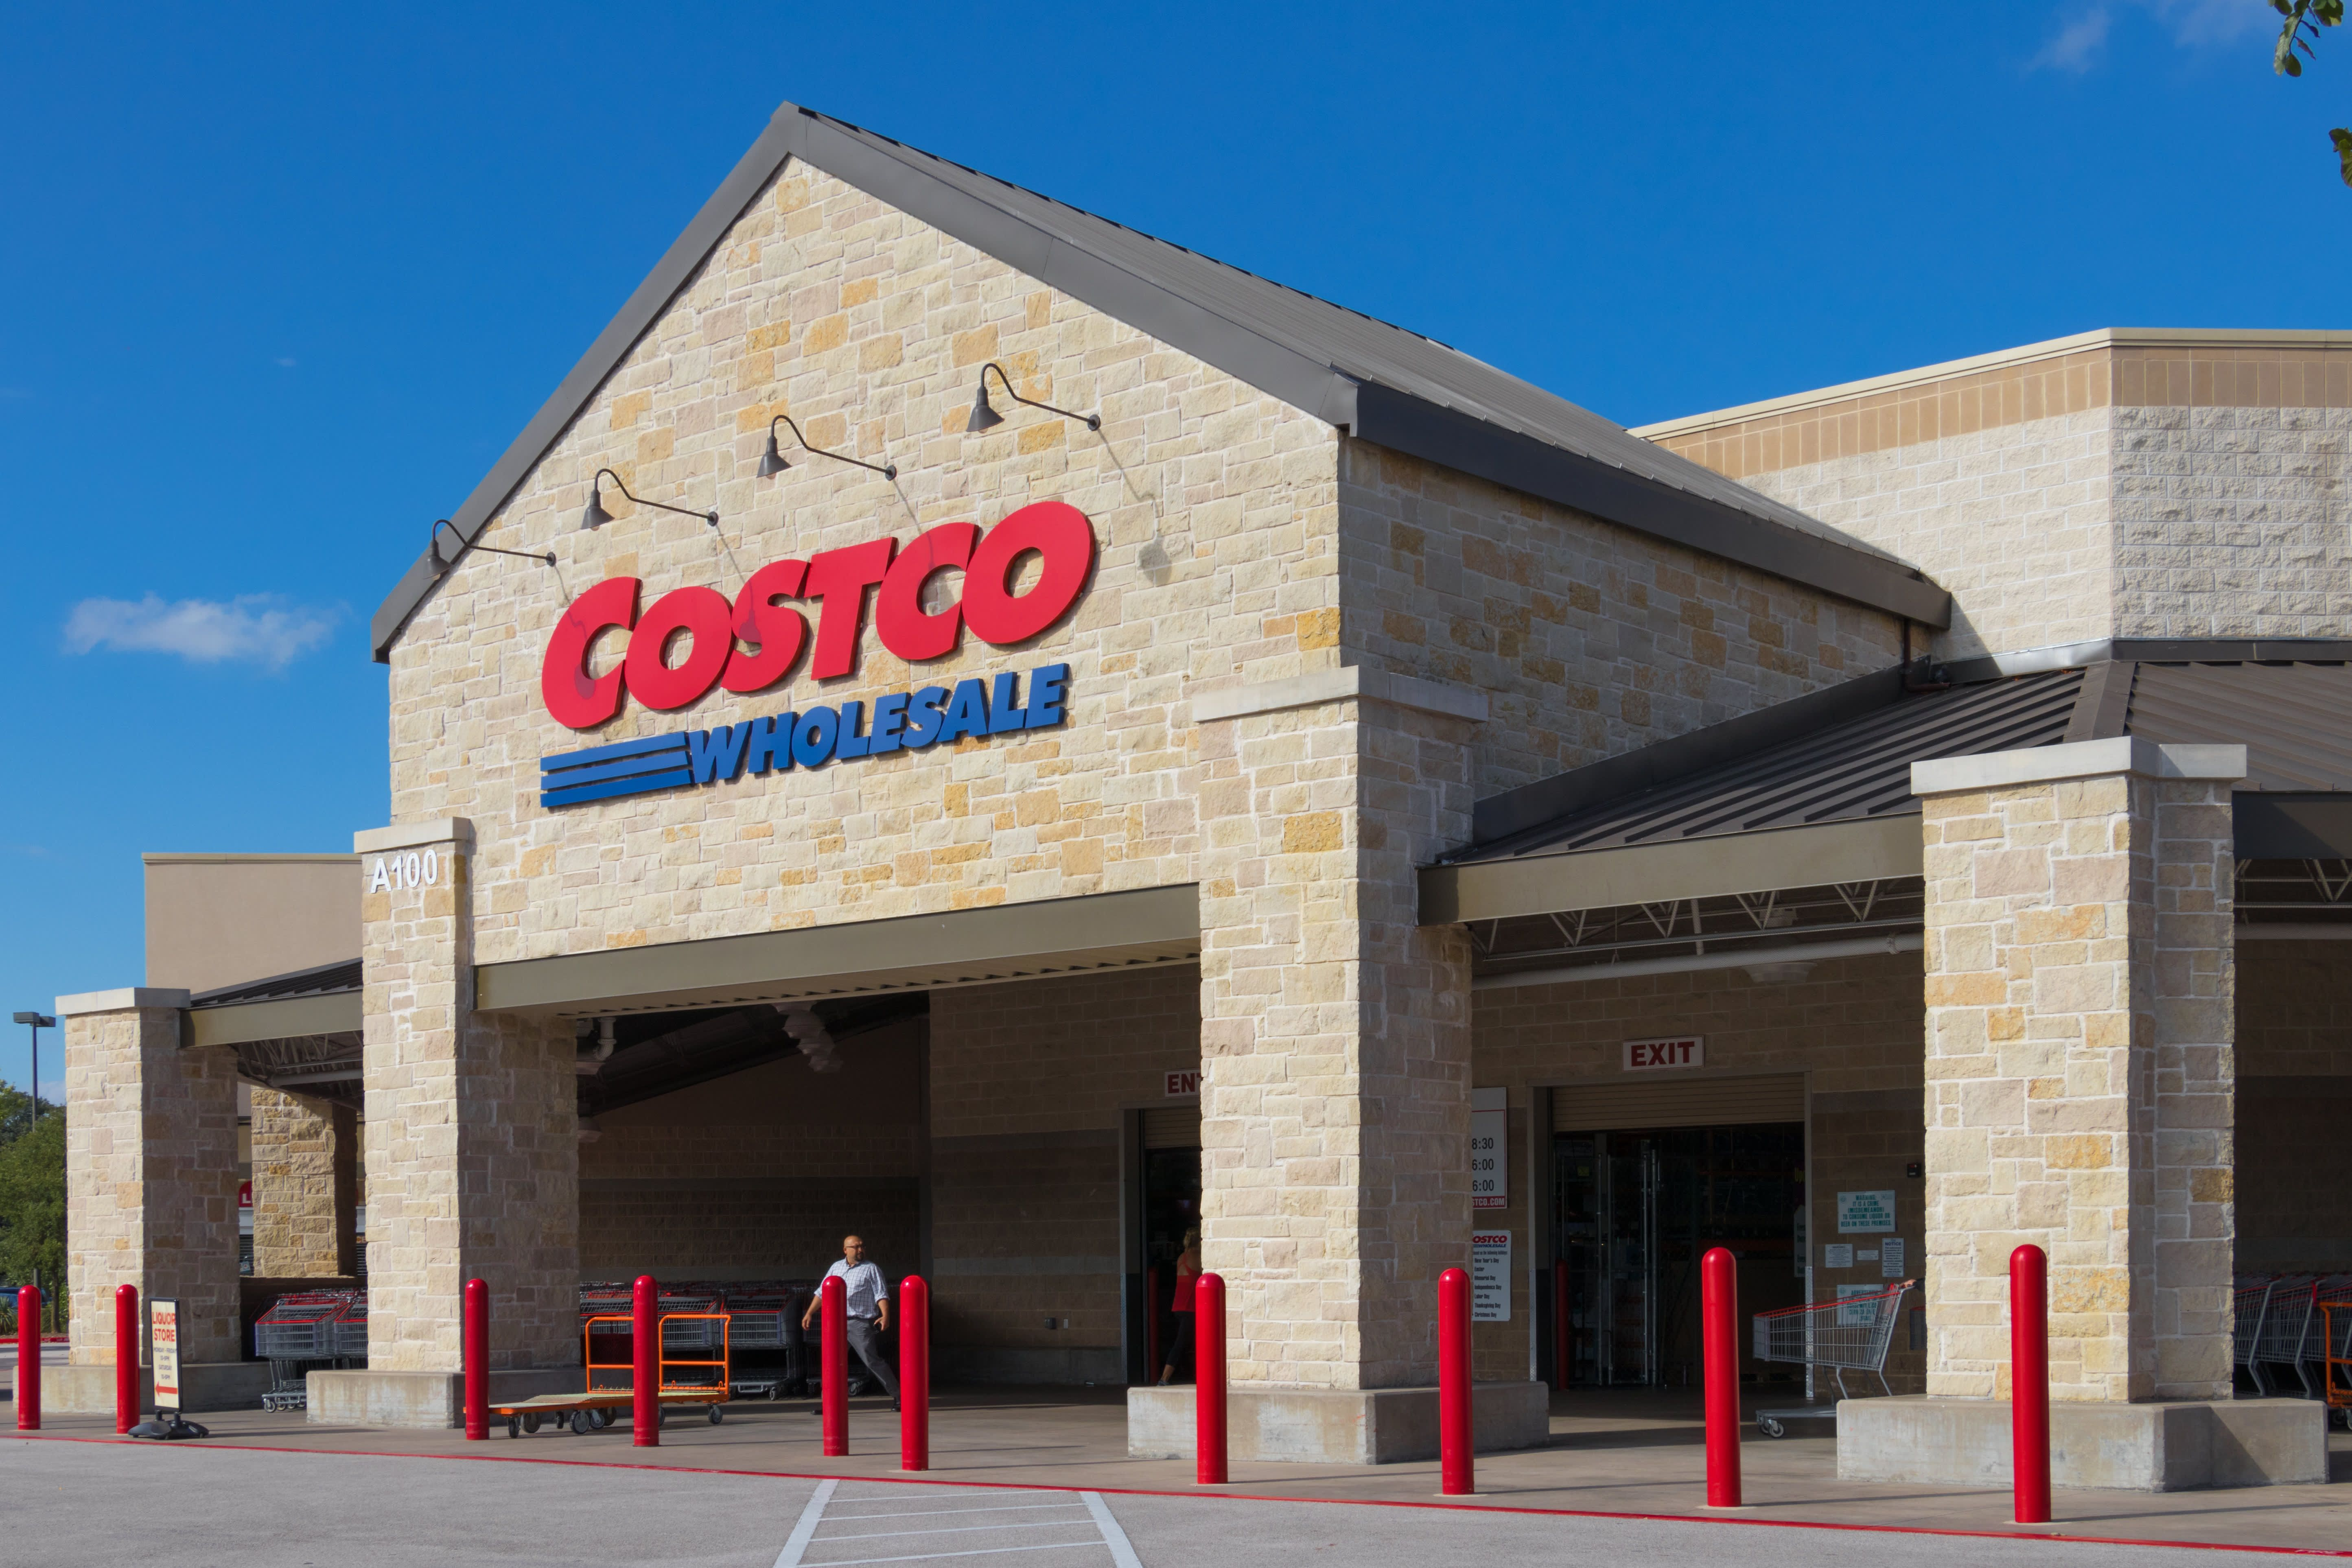 The 5 Best Products from Costco, According to Employees